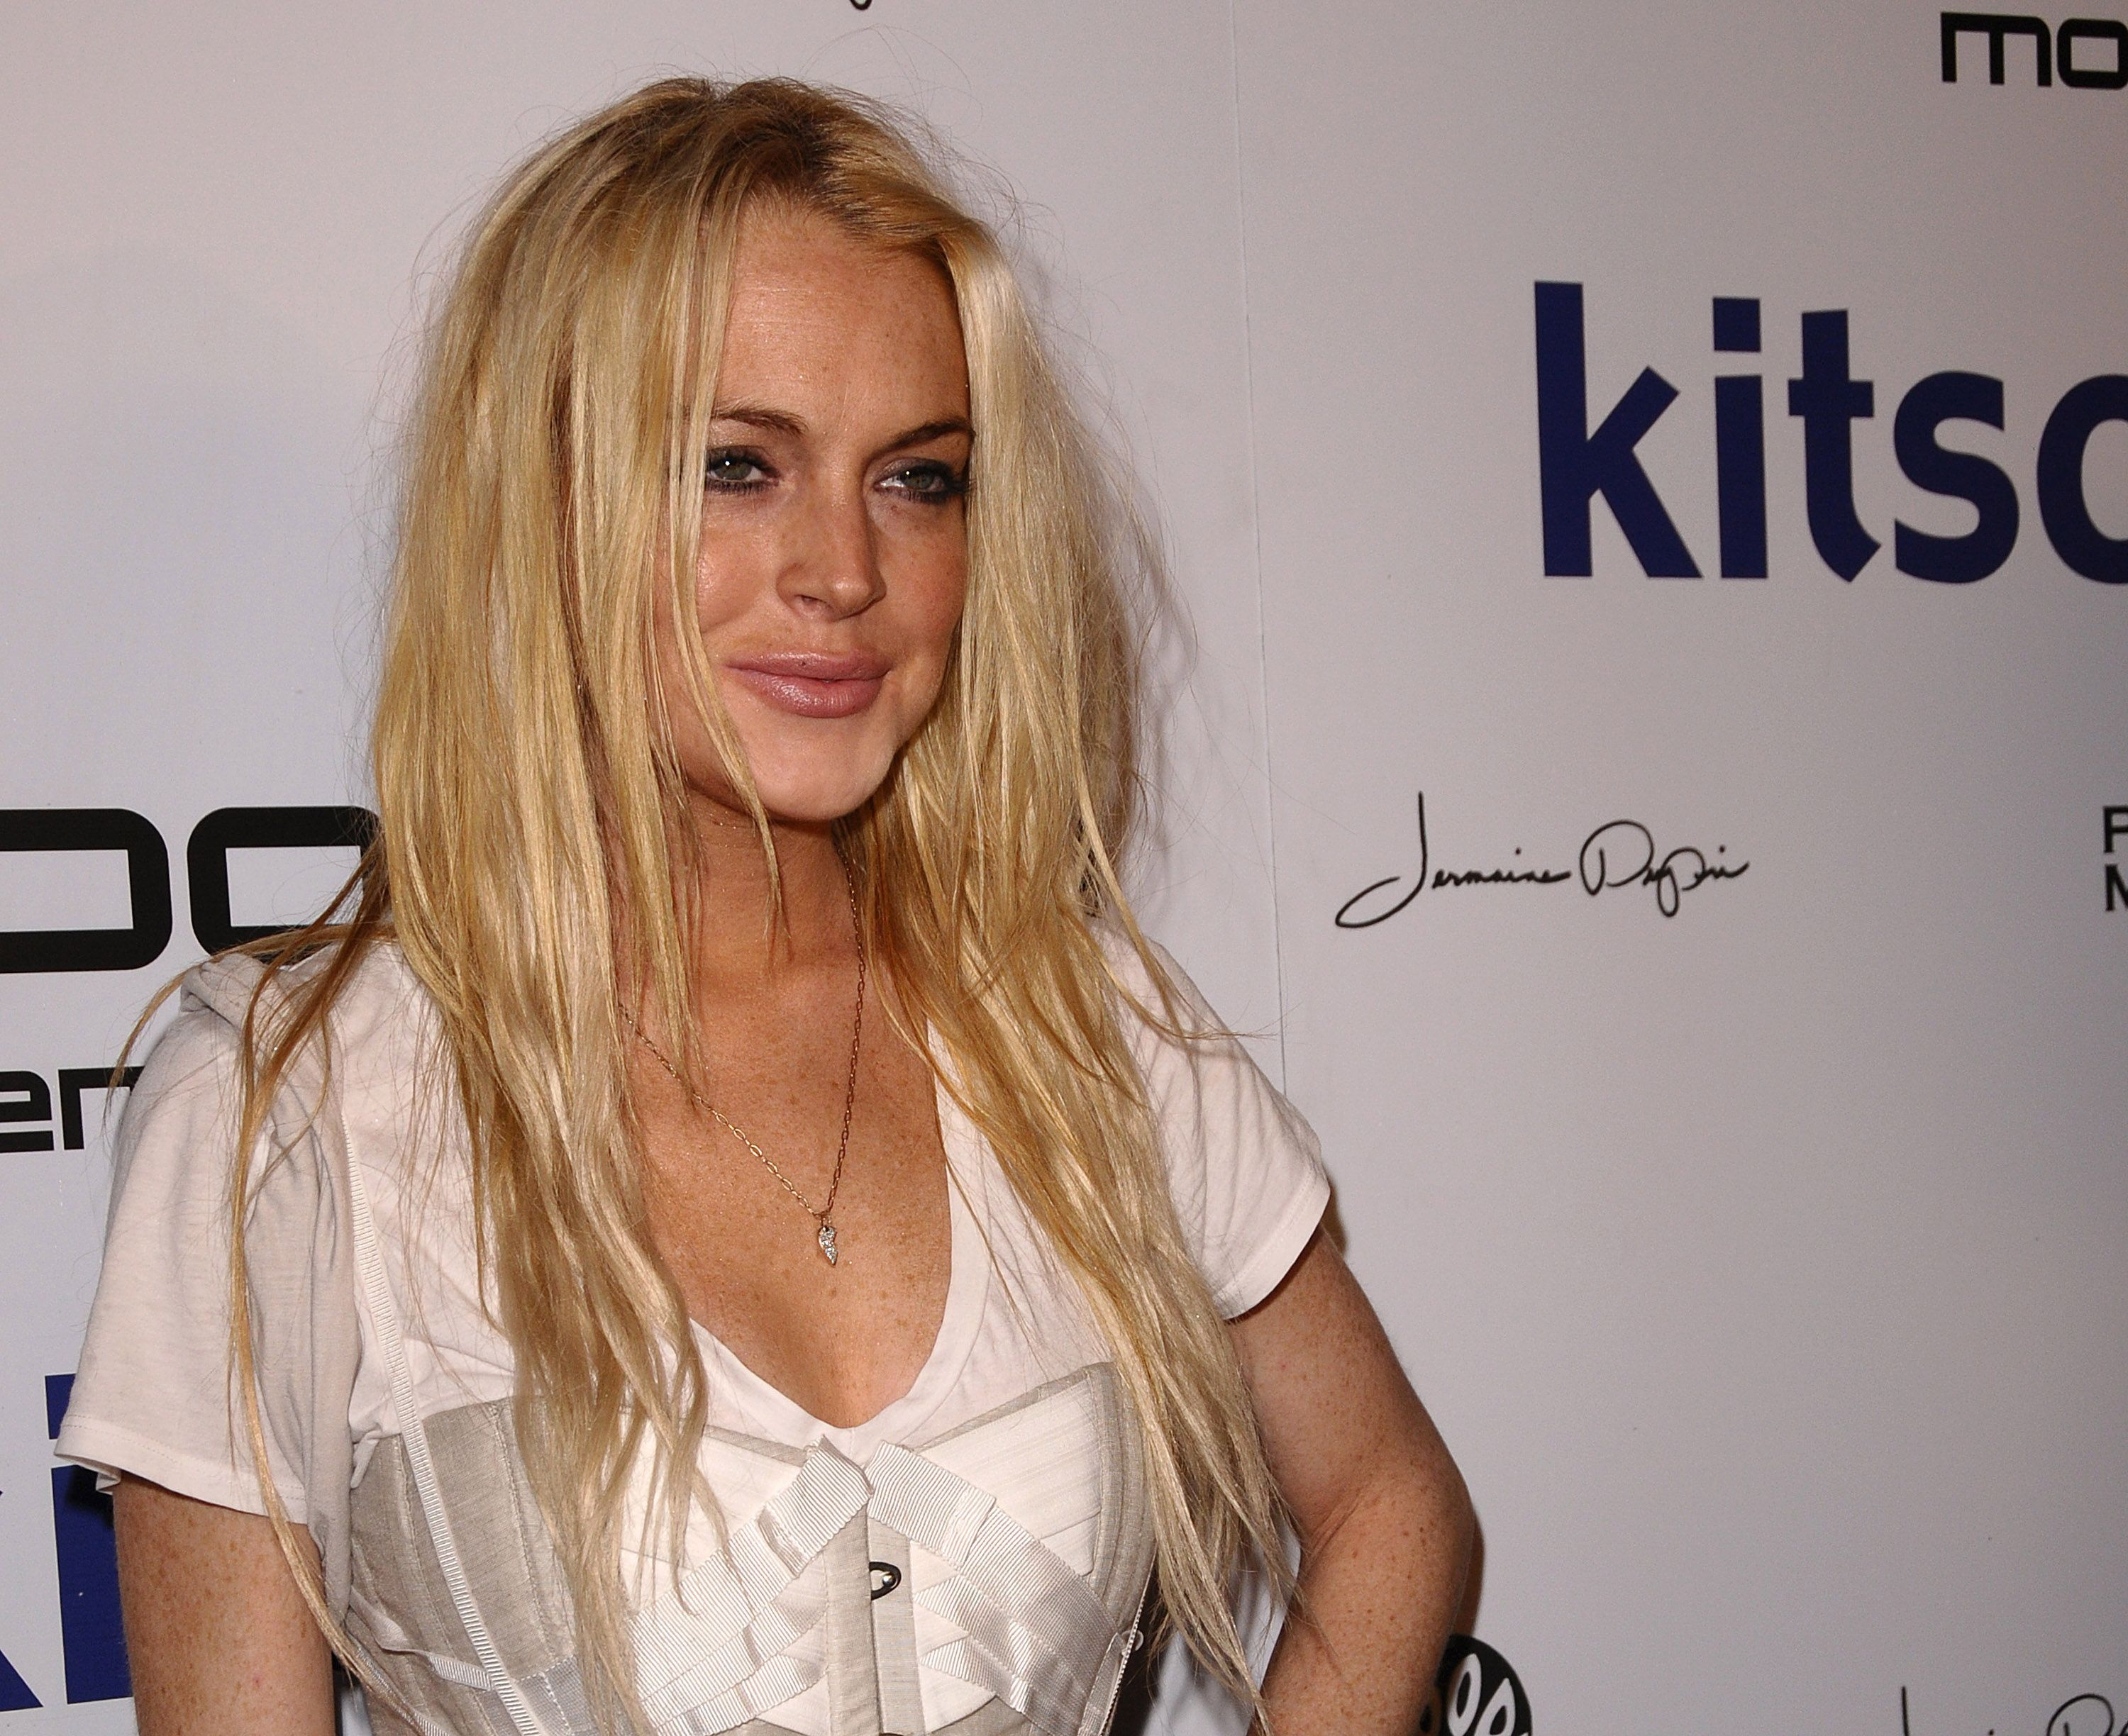 Lindsay Lohan at the Nu Pop Movement Watch launch party at Kitson Men on November 12, 2009 in West Hollywood, California. | Source: Getty Images